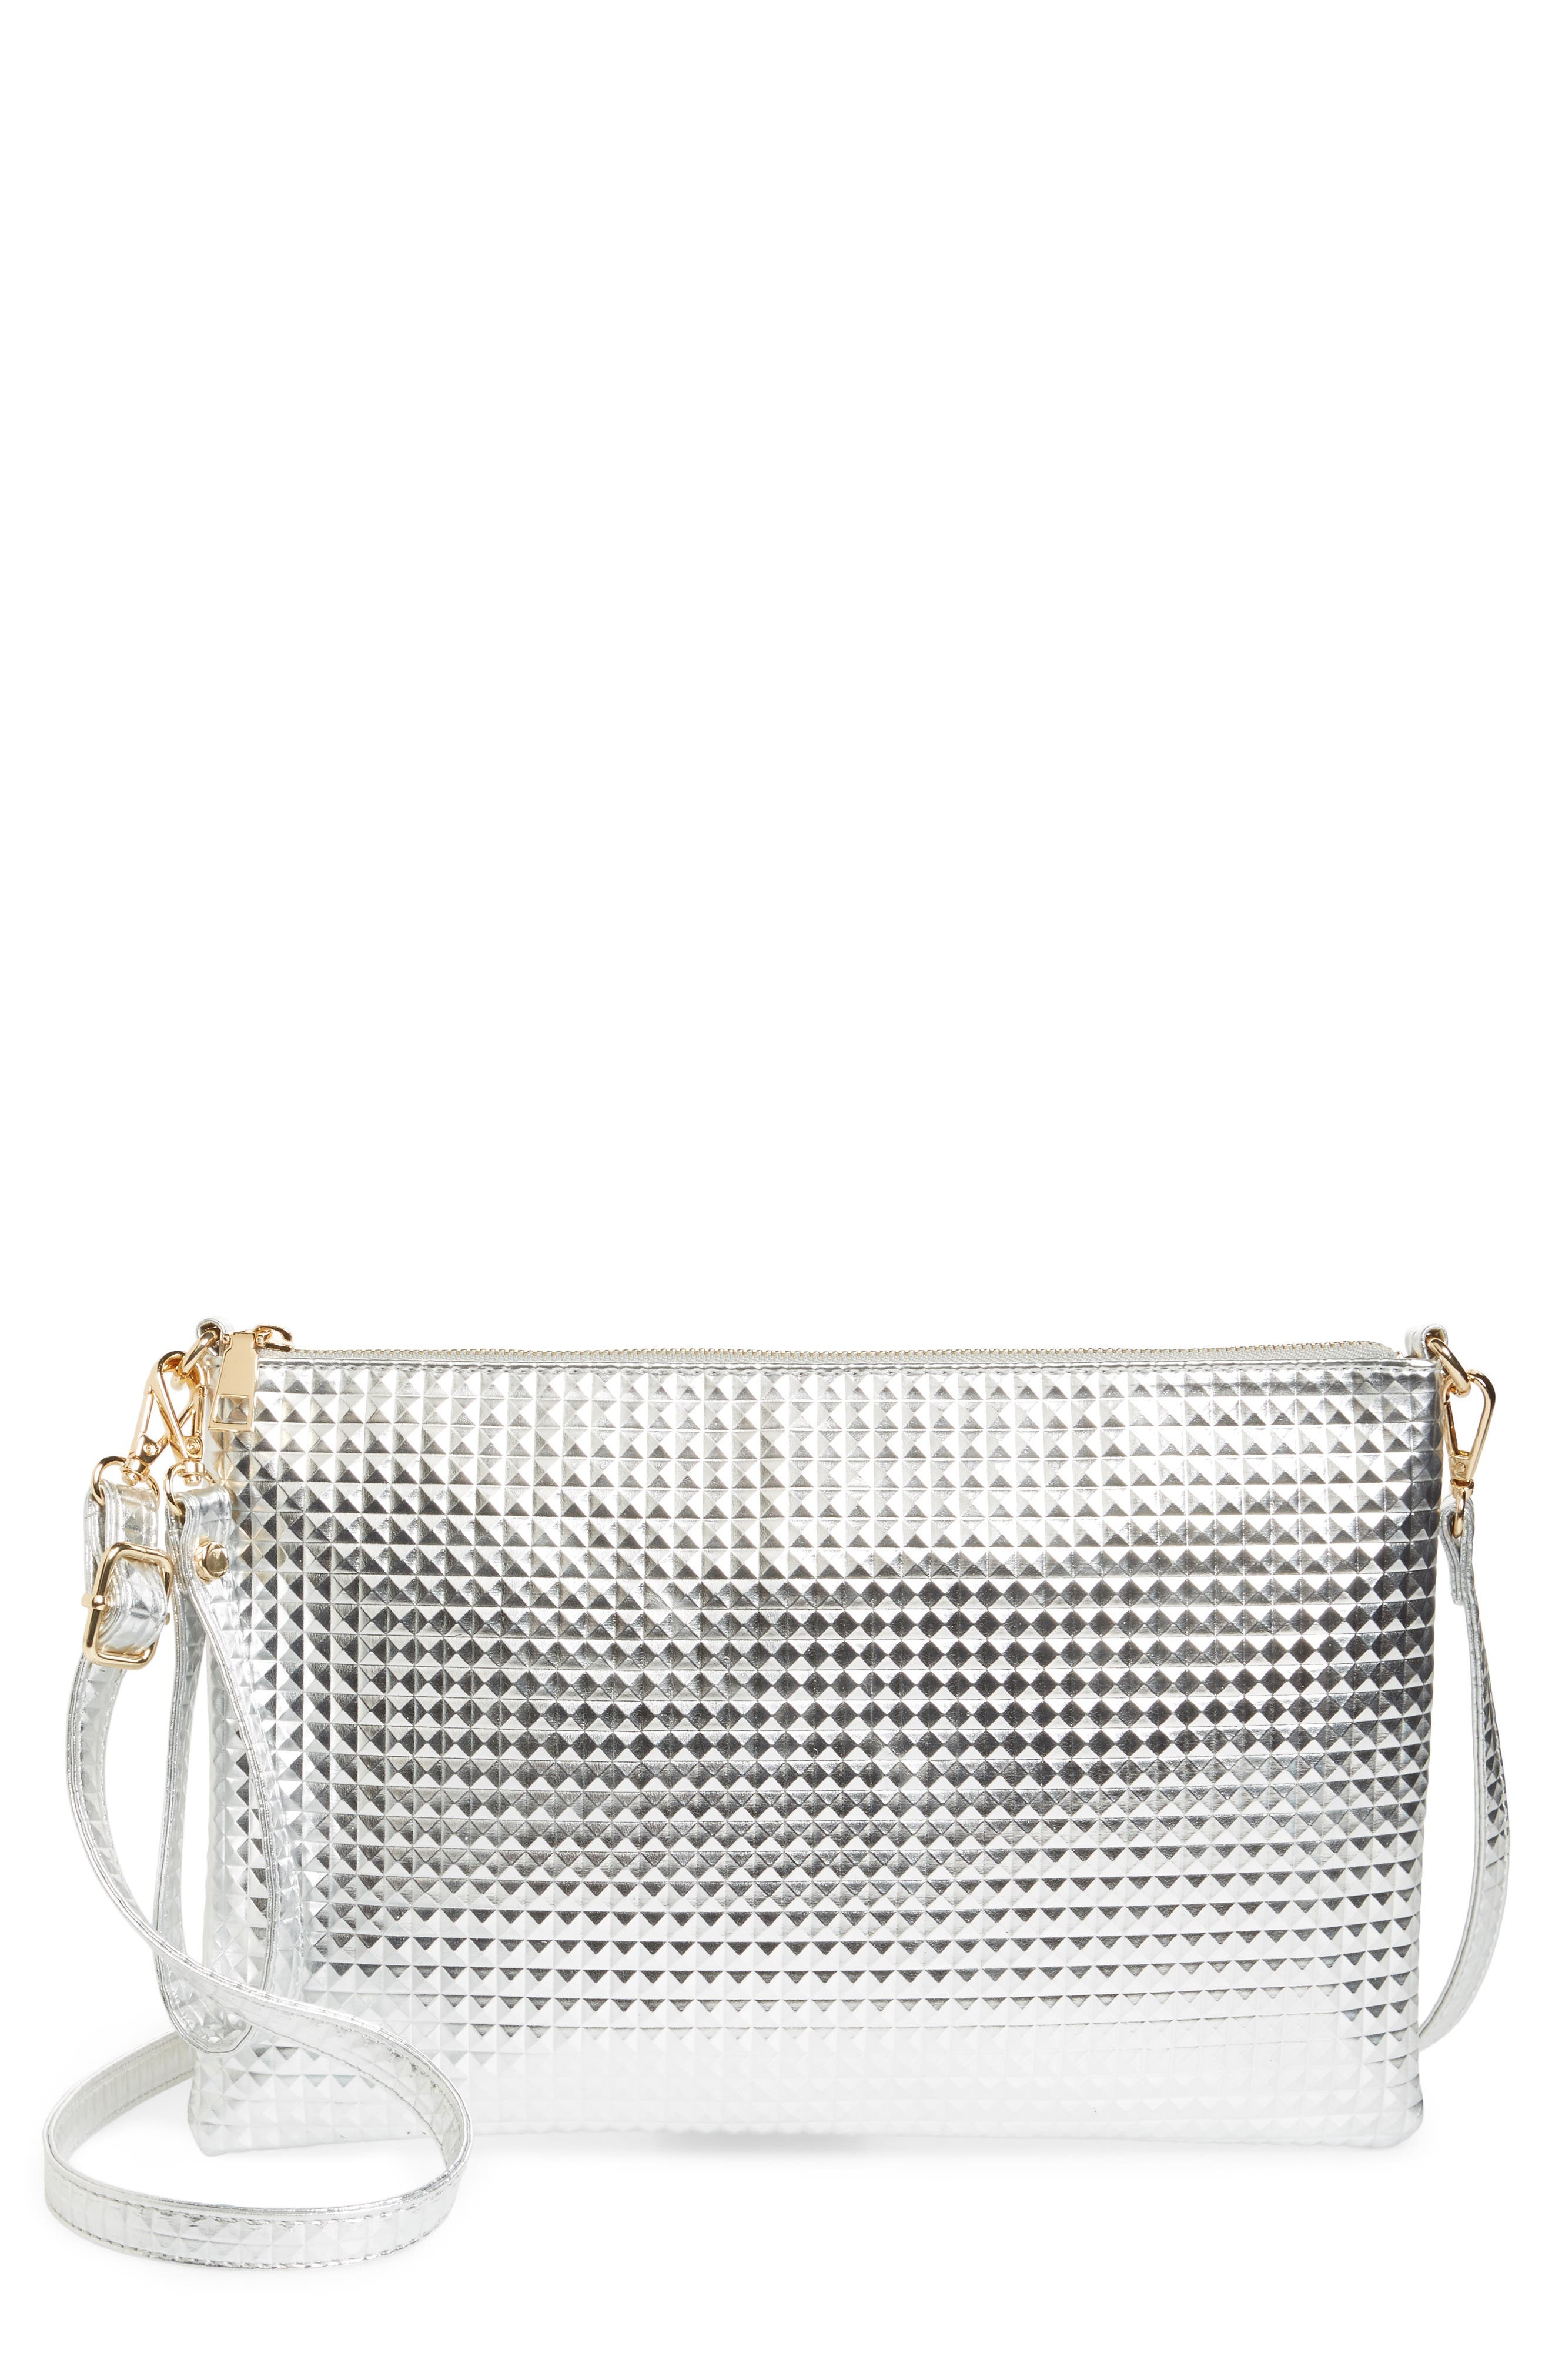 Main Image - Evelyn K Large Textured Metallic Faux Leather Pouch